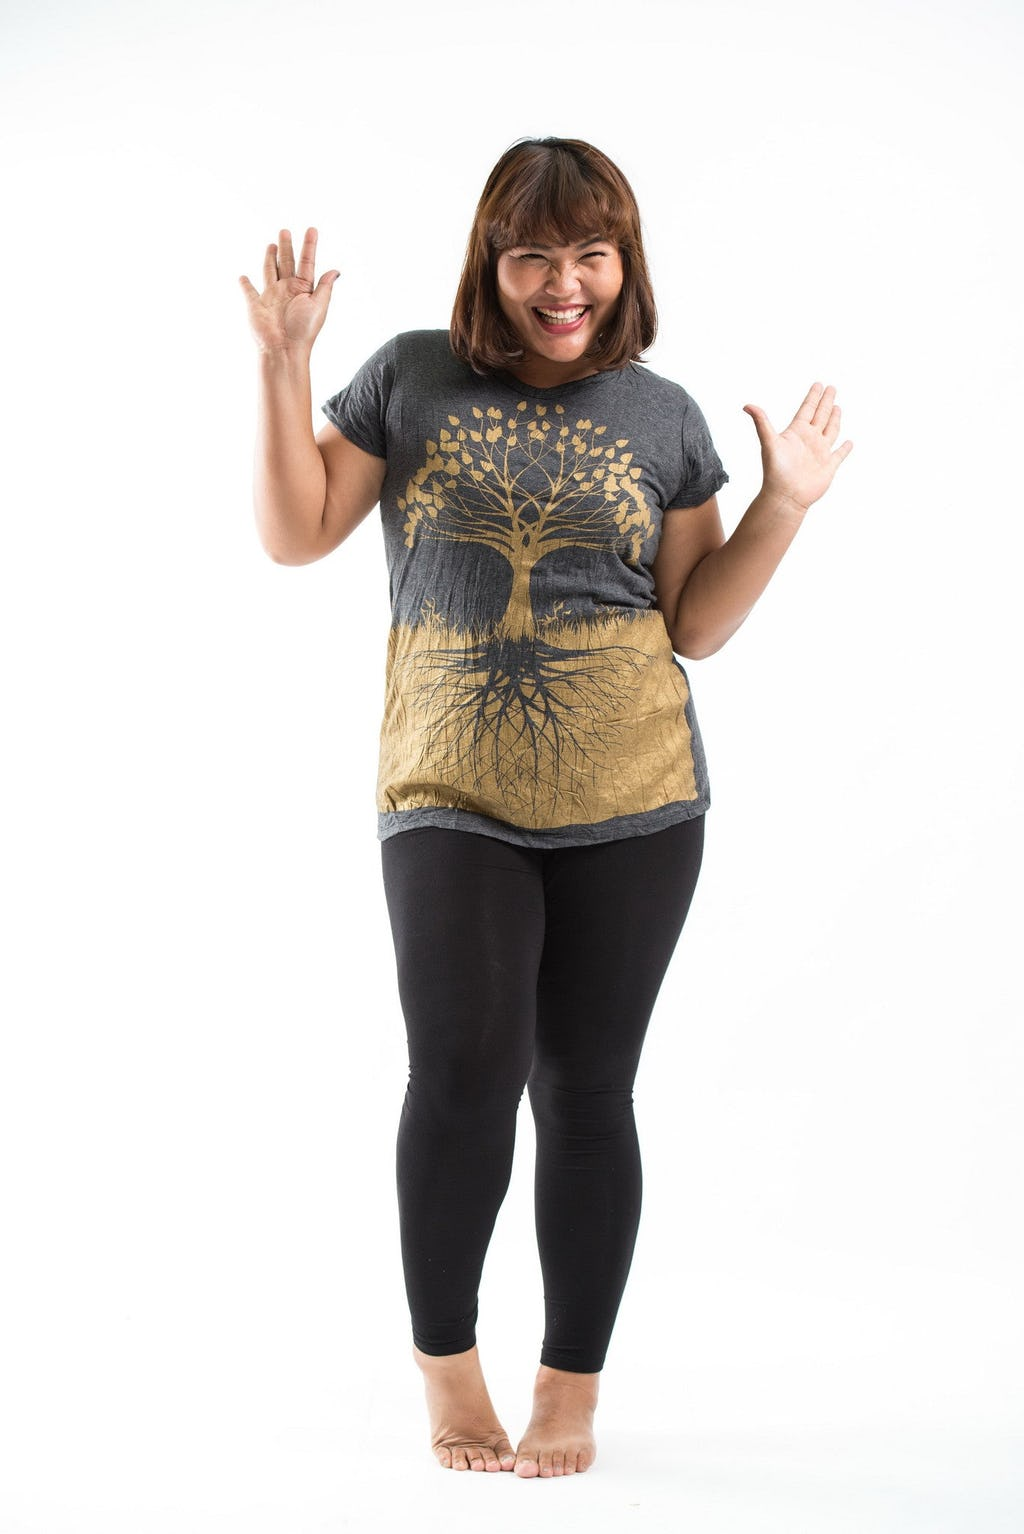 Plus Size Women\'s Tree of Life T-Shirts Gold on Black | Sure Design